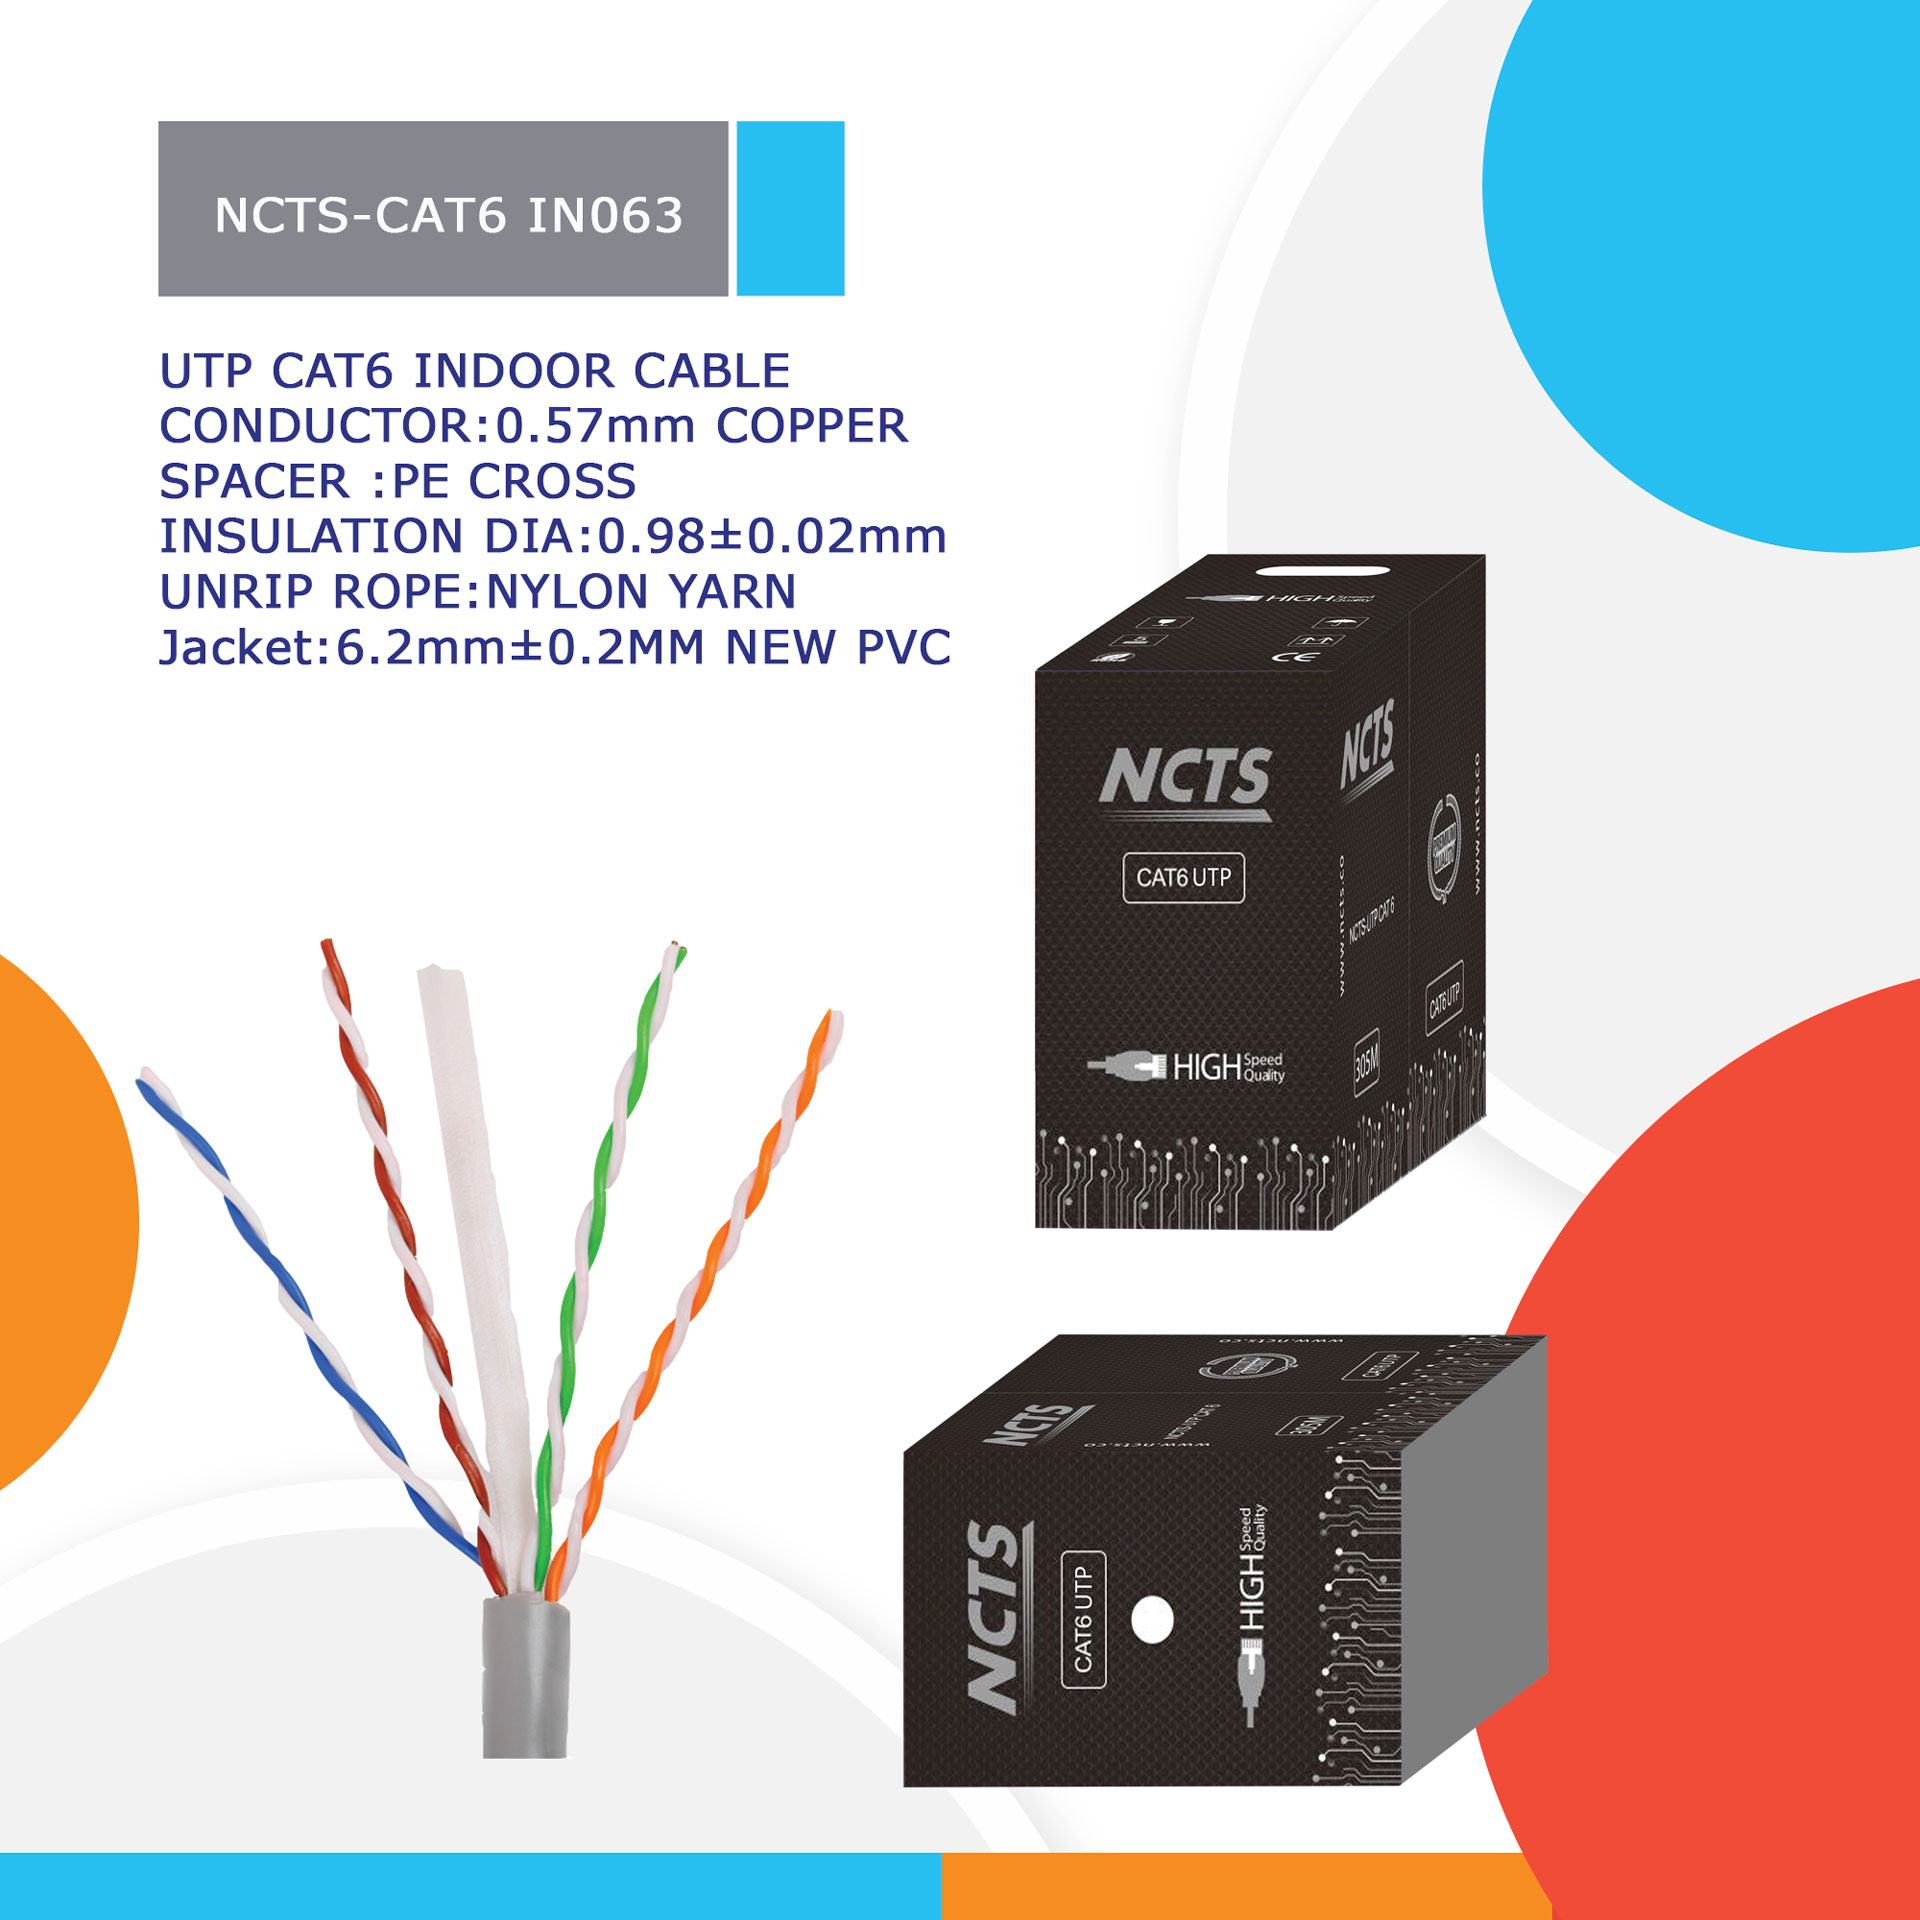 NCTS-CAT6 IN063